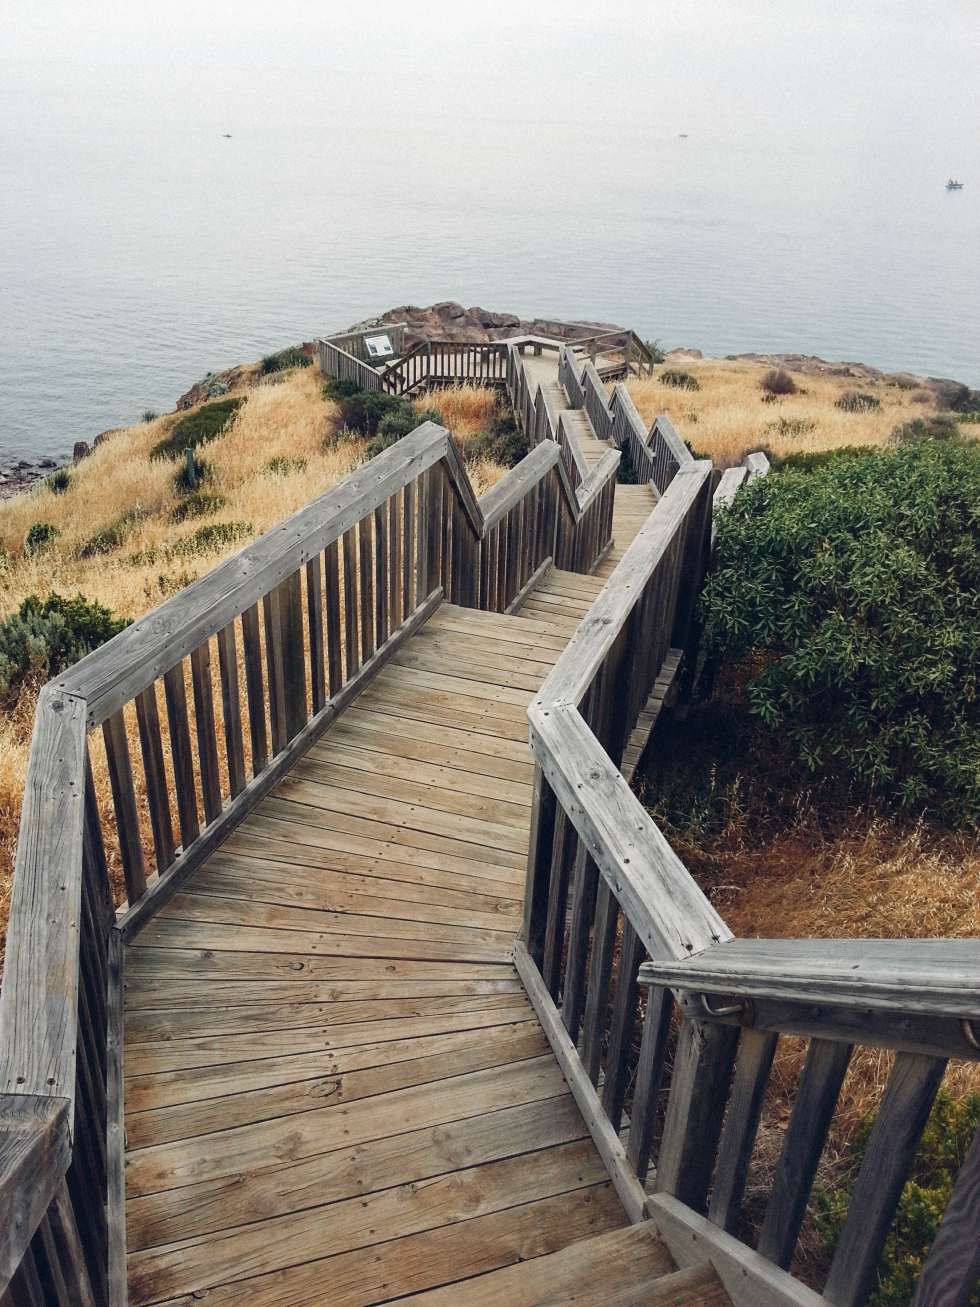 Hallett Cove, Adelaide, Australia | Moments by Charlie | Creative Lifestyle Blog | Art Fashion Lifestyle Photography | Made in Adelaide, Australia